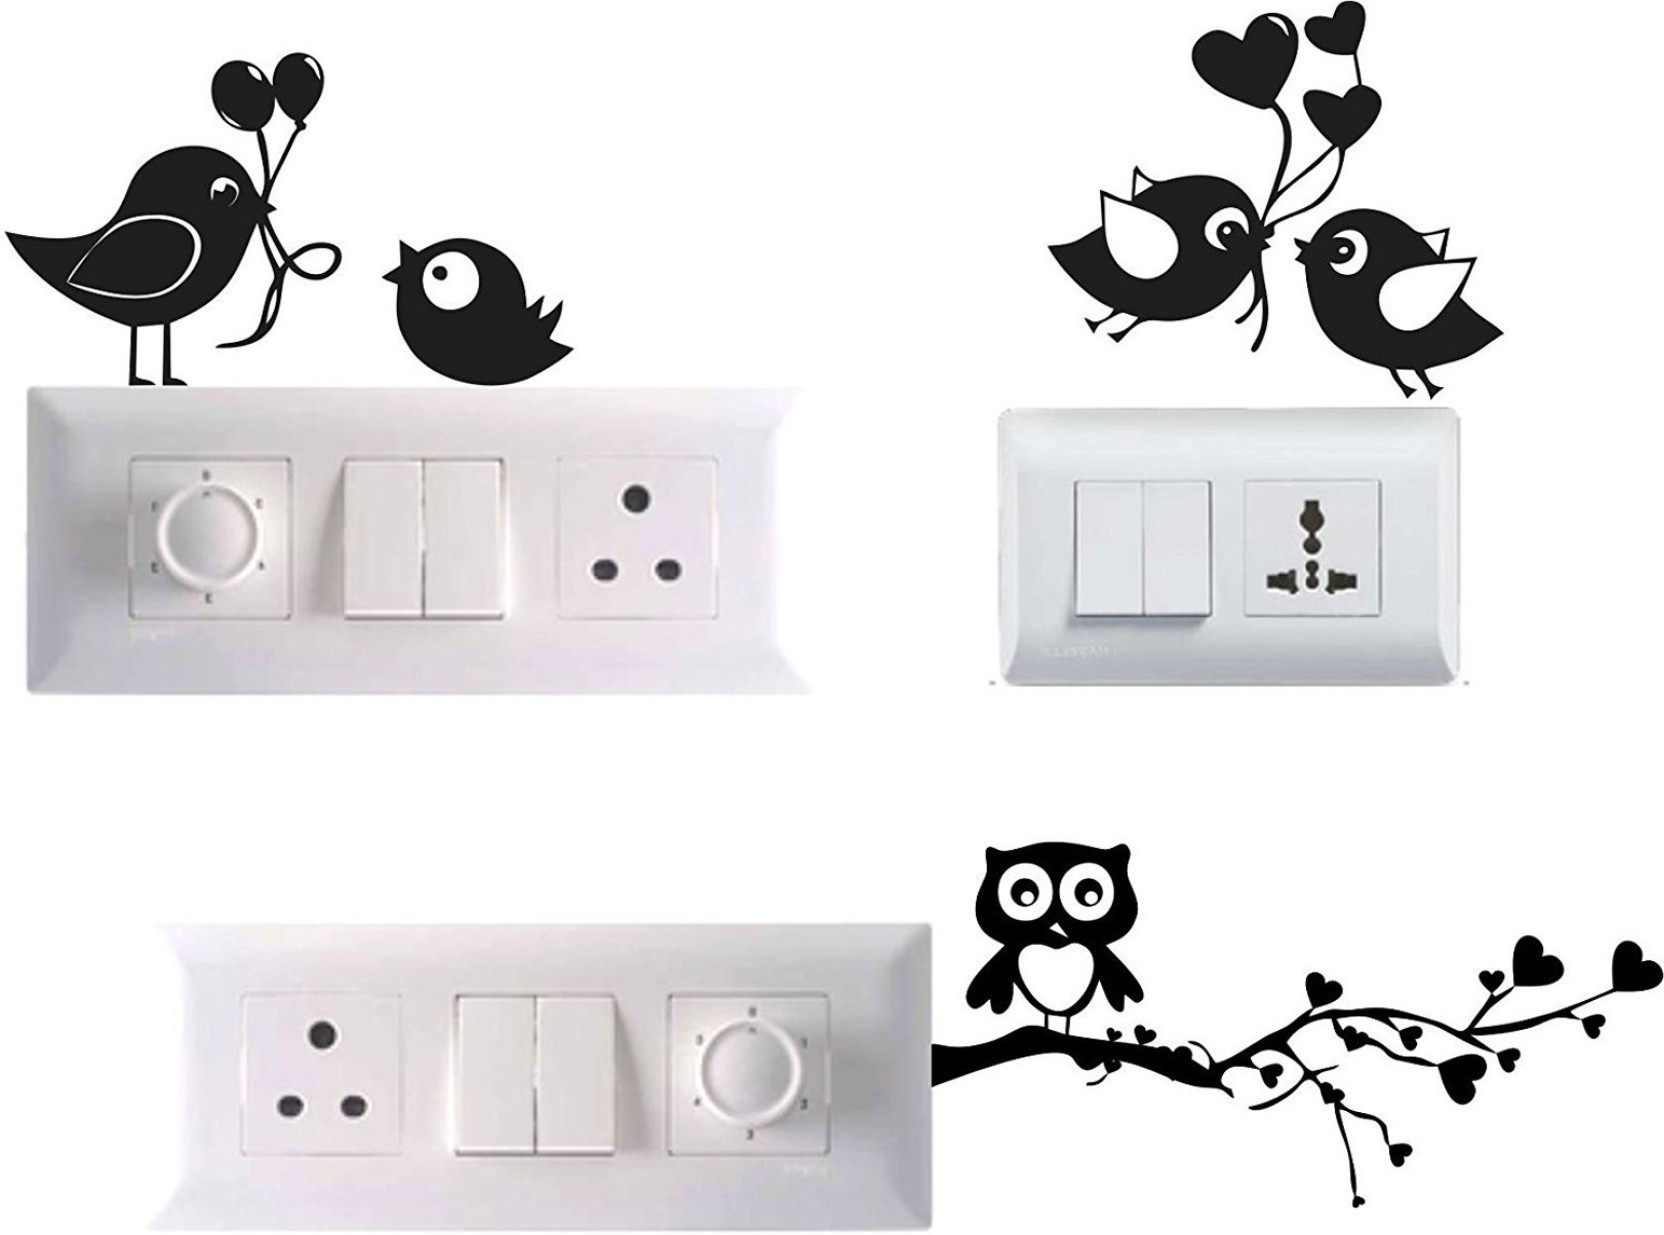 Pixel Print Small Beautiful Birds Pvc Vinyl Set Of 3 Wall Stickers For Light Switch Socket Board Sticker